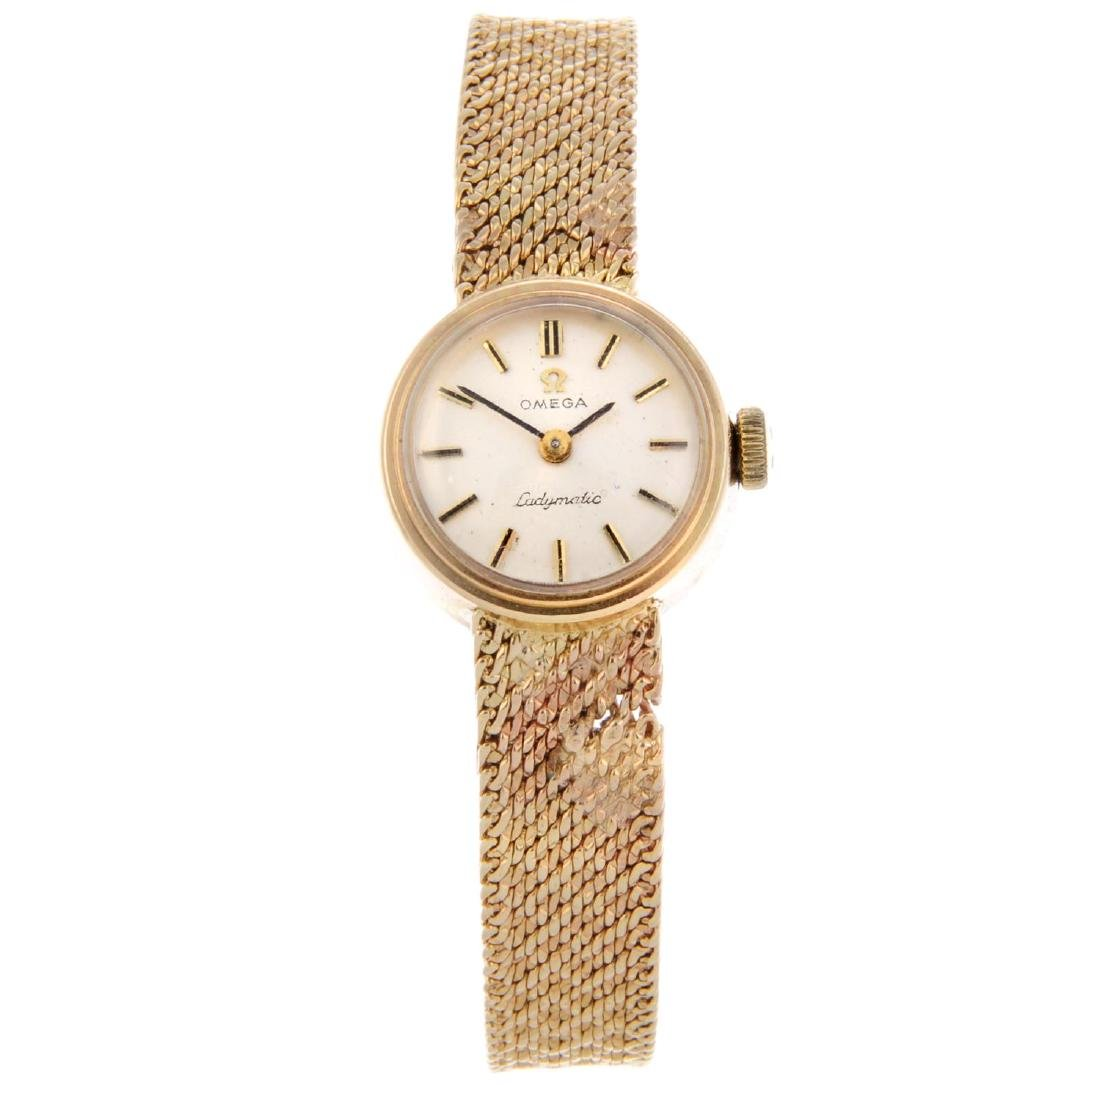 OMEGA - a lady's Ladymatic bracelet watch. 9ct yellow